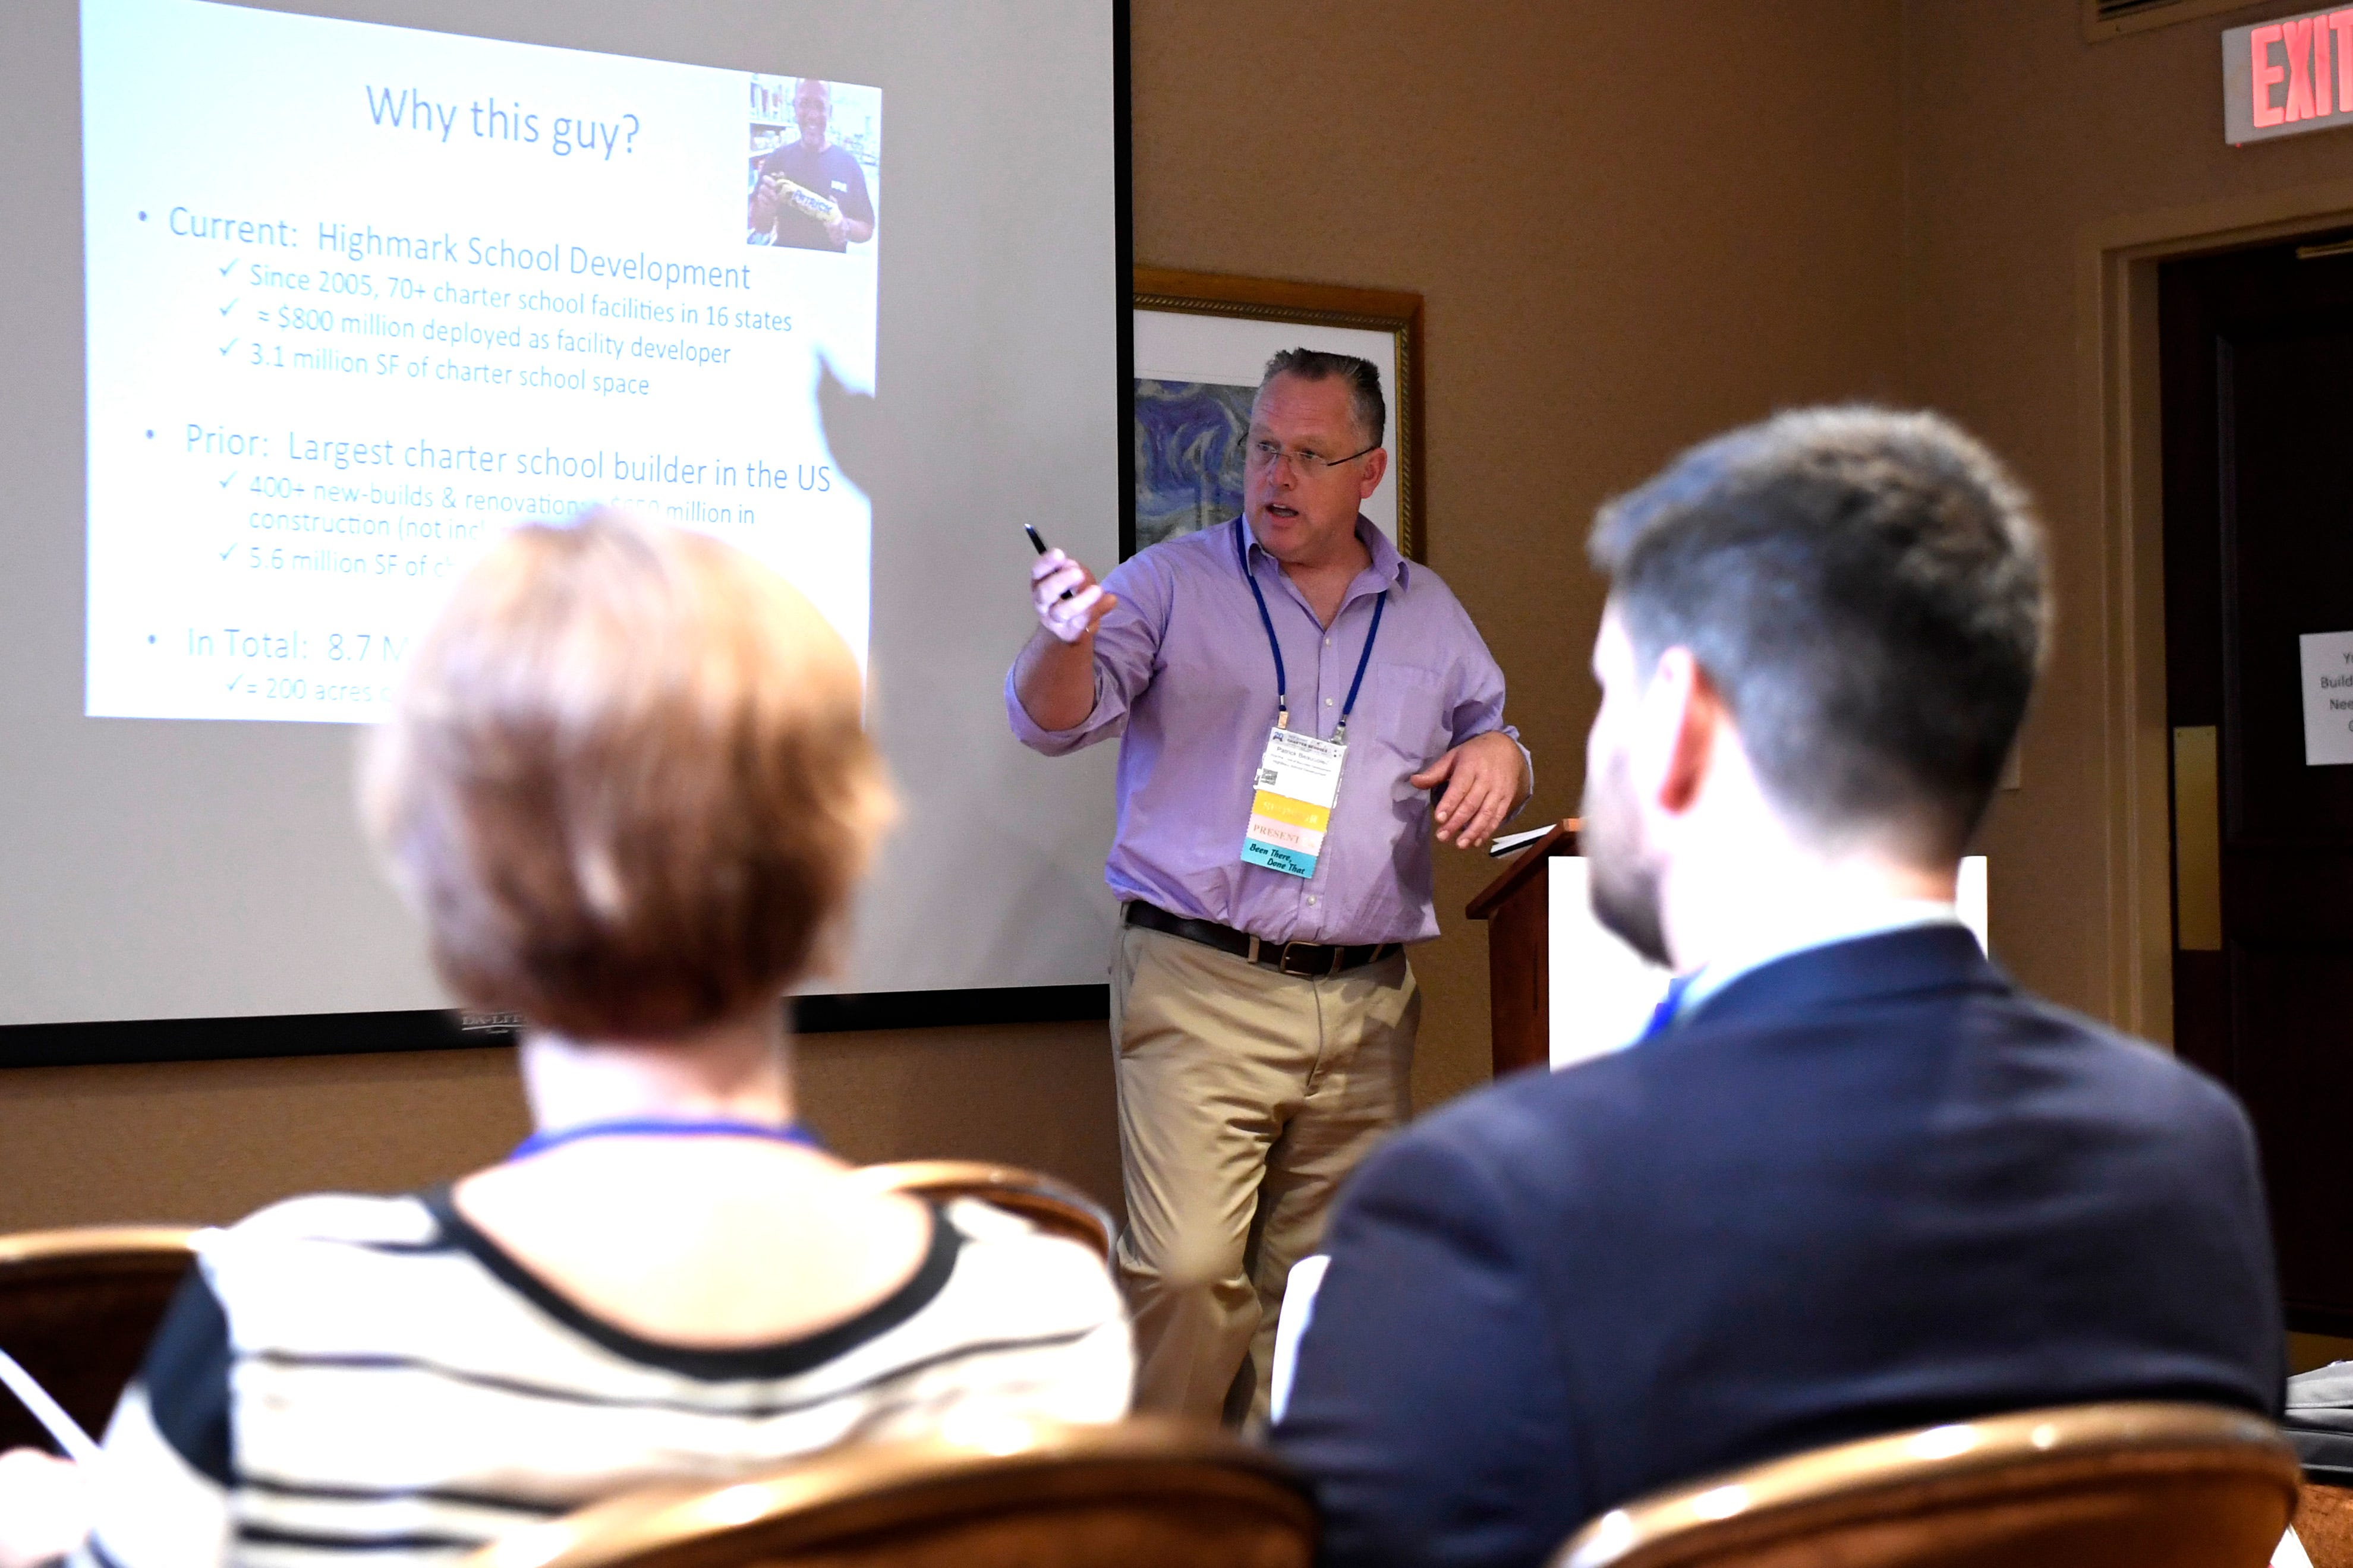 Patrick Beausoleil, vice president of business development for HighMark School Development, speaks to charter operators about what's realistic when planning, designing and building a school during the New Jersey Charter Schools Association's annual conference in Newark in October 2017.